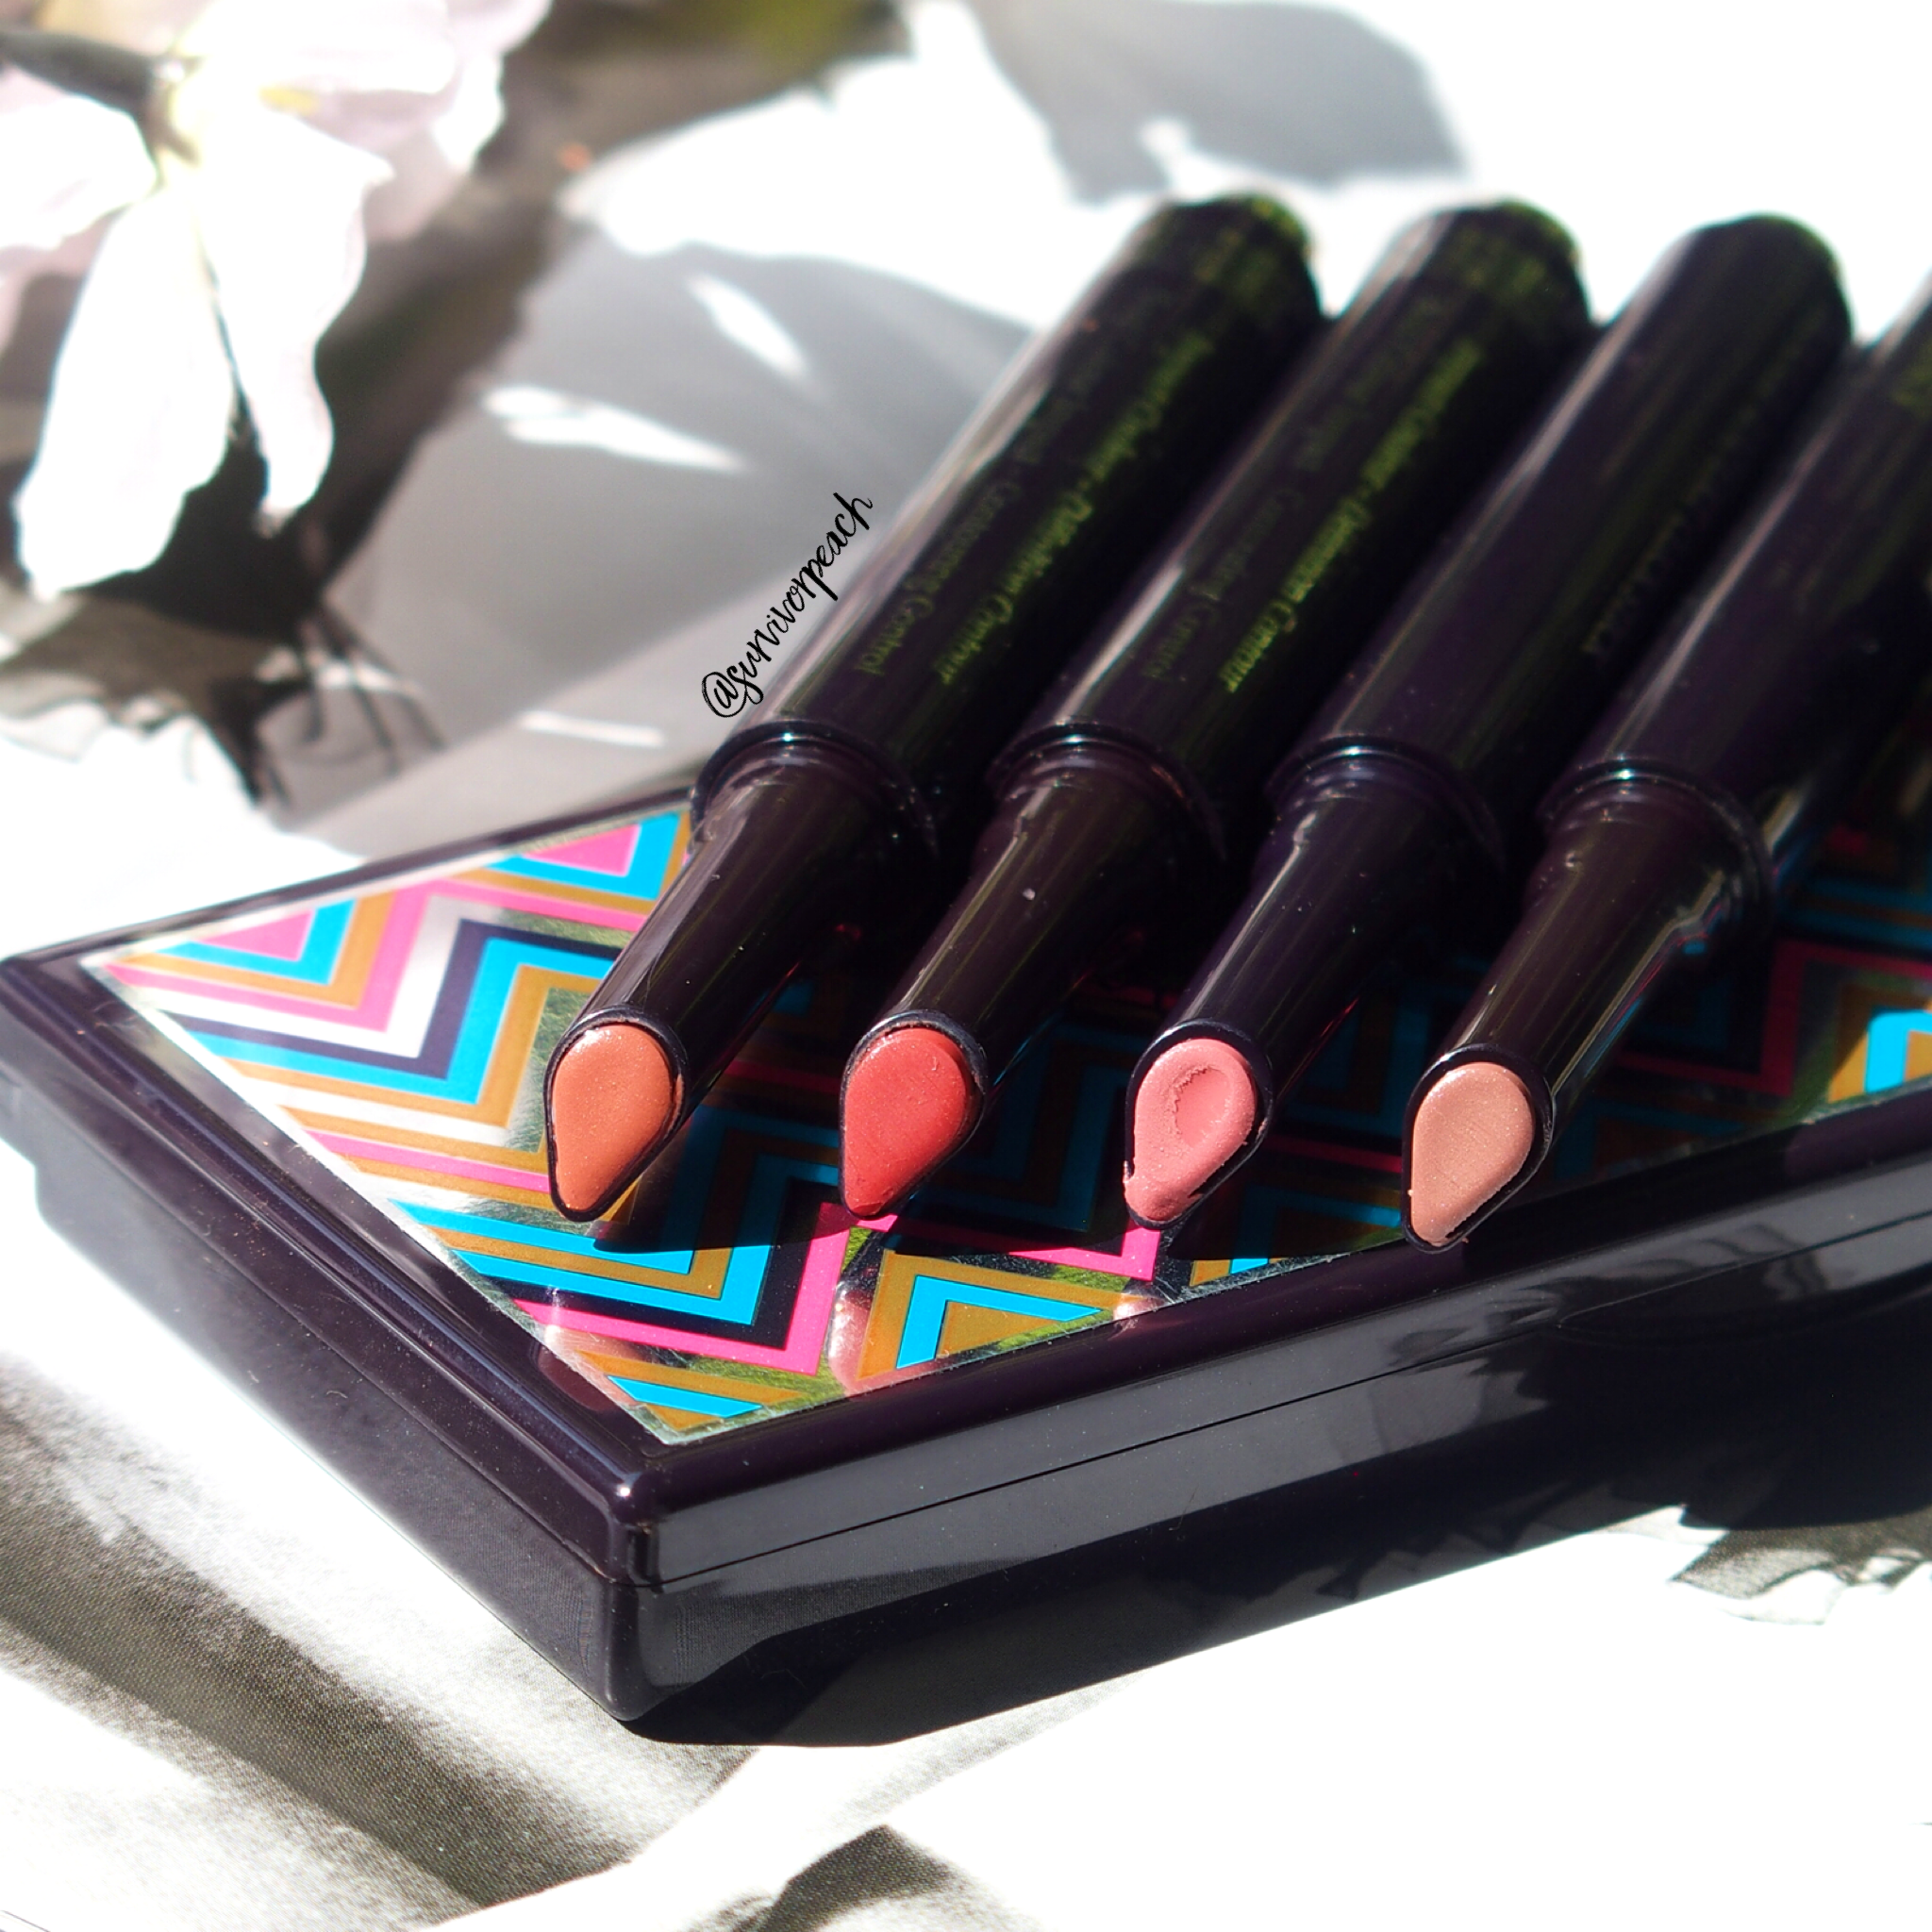 Rouge Expert Click sticks in #3 Bare Me #6 Rosy Flush, #11 Baby Brick, and #12 Naked Nectar.